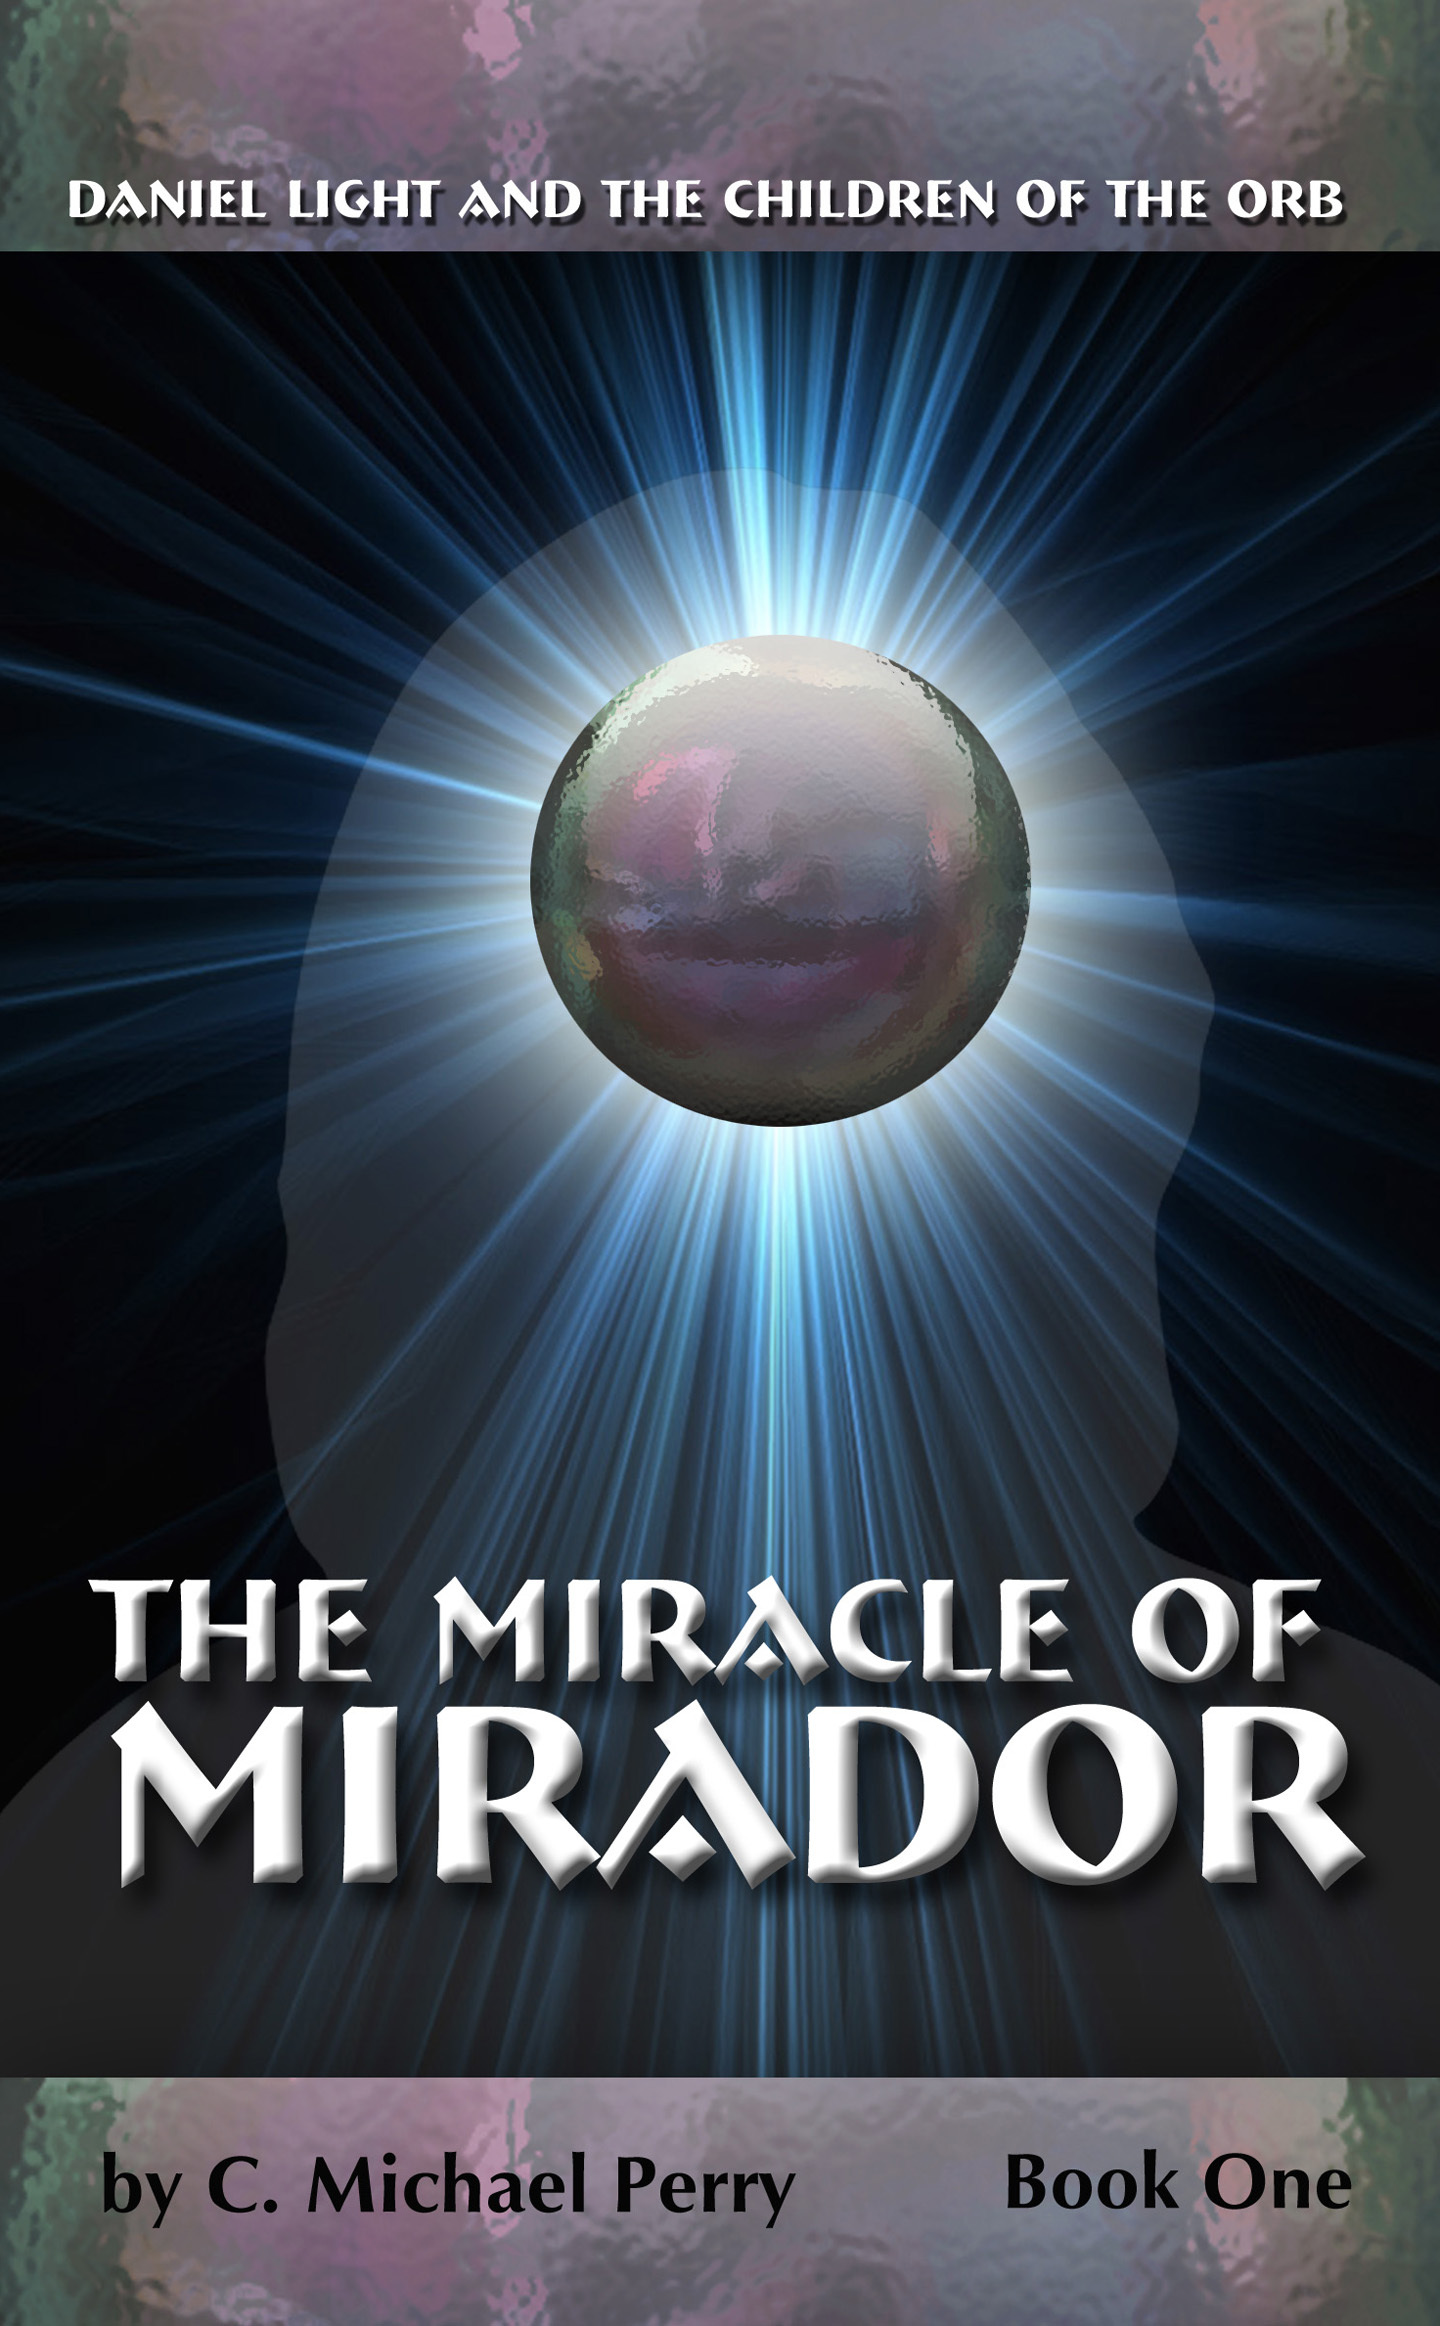 The Miracle Of Mirador